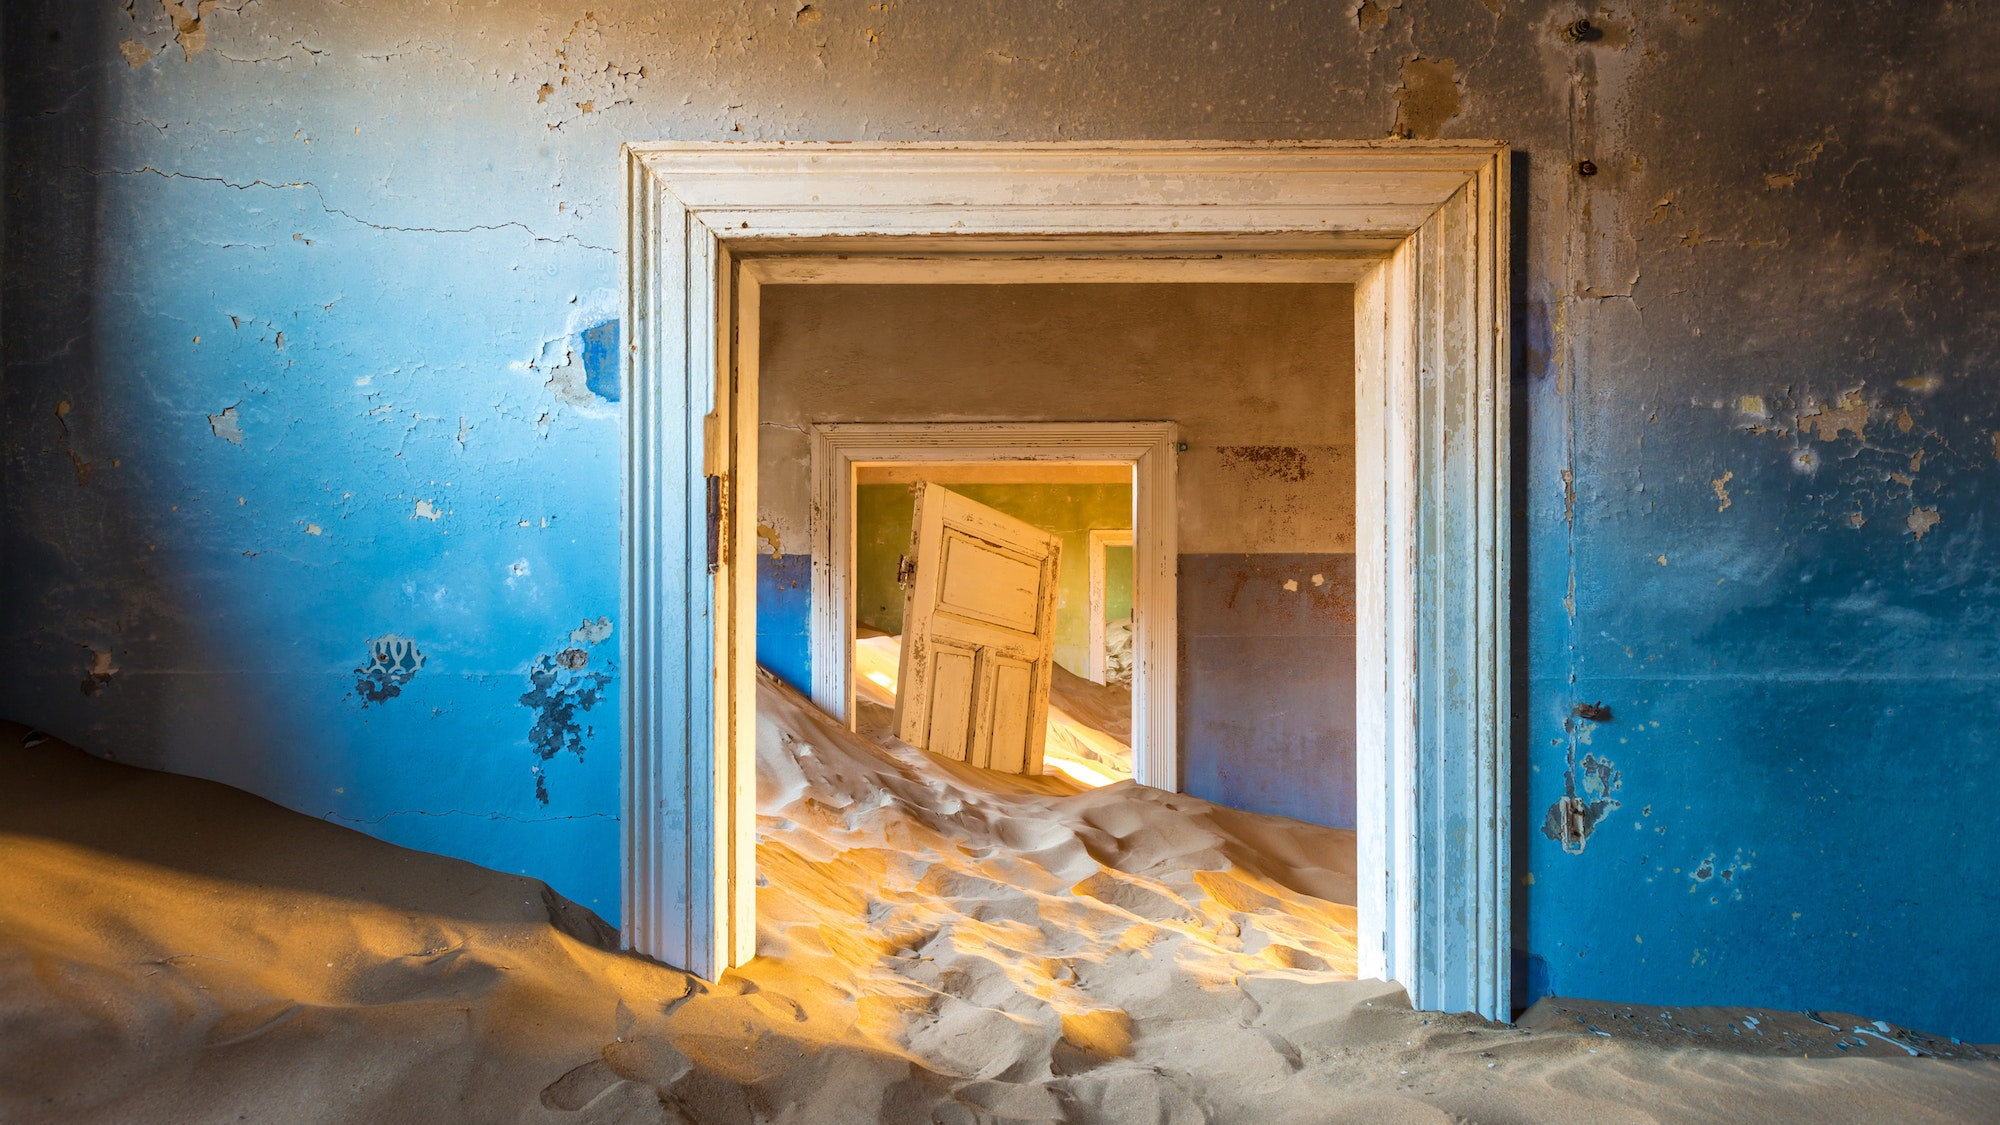 15 Famous Abandoned Places Around The World